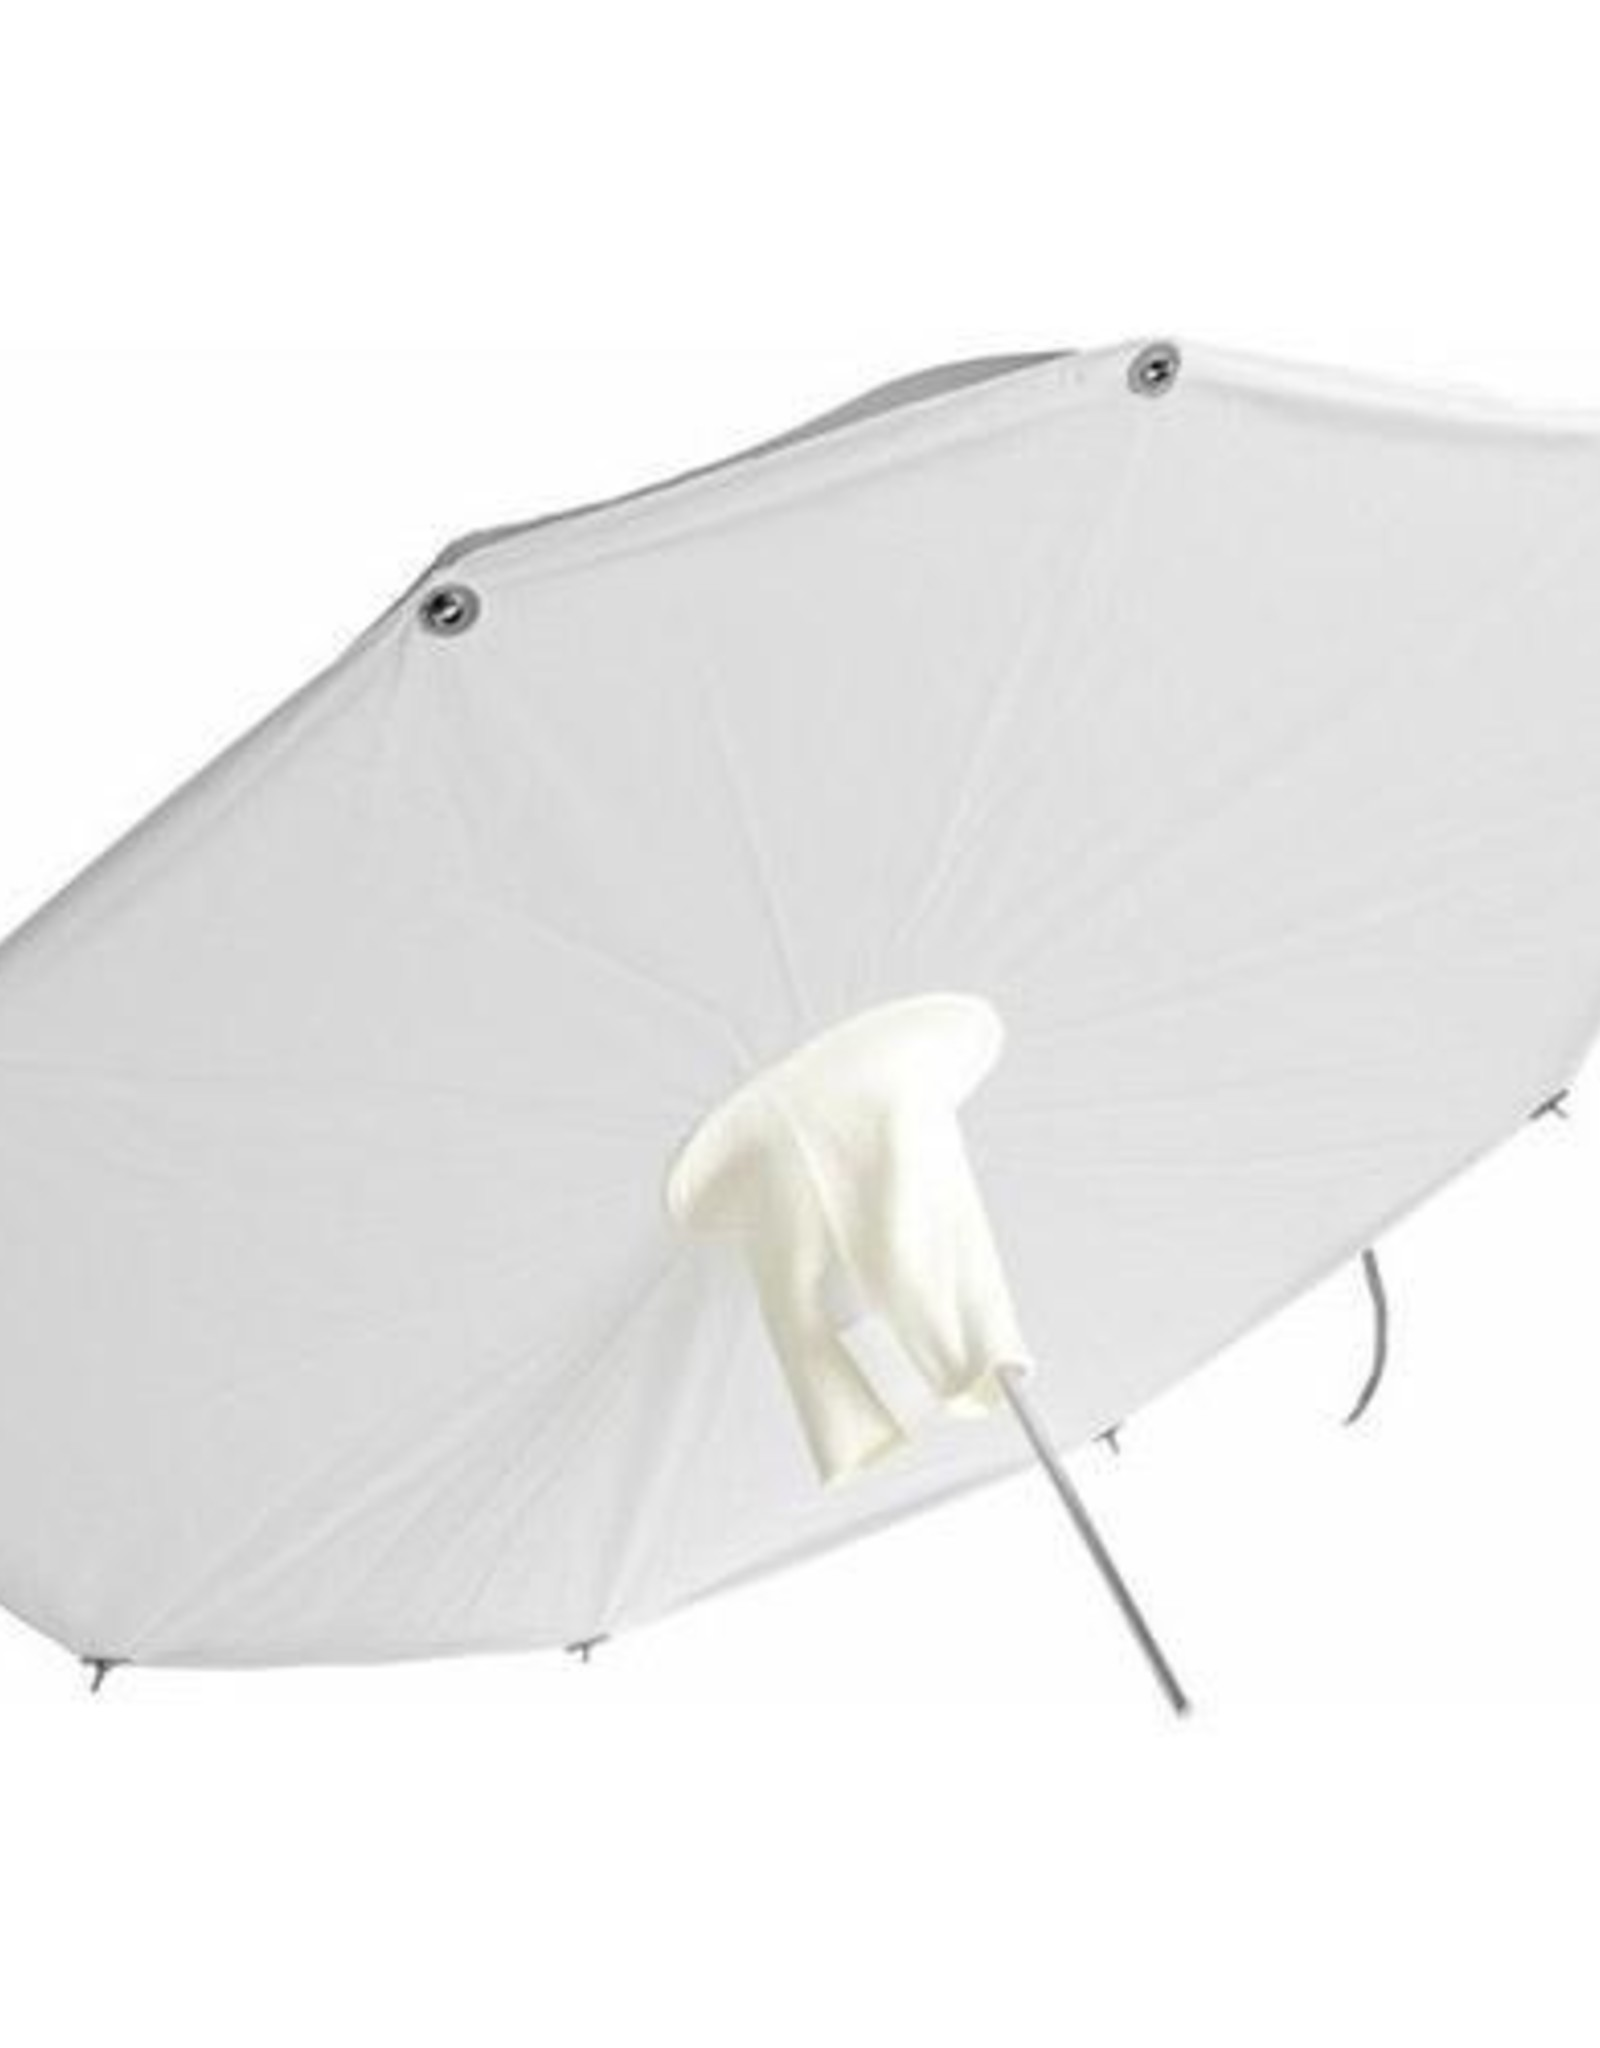 Photek Photek Umbrella - SoftLighter II with 7mm & 8mm Shafts - 46""